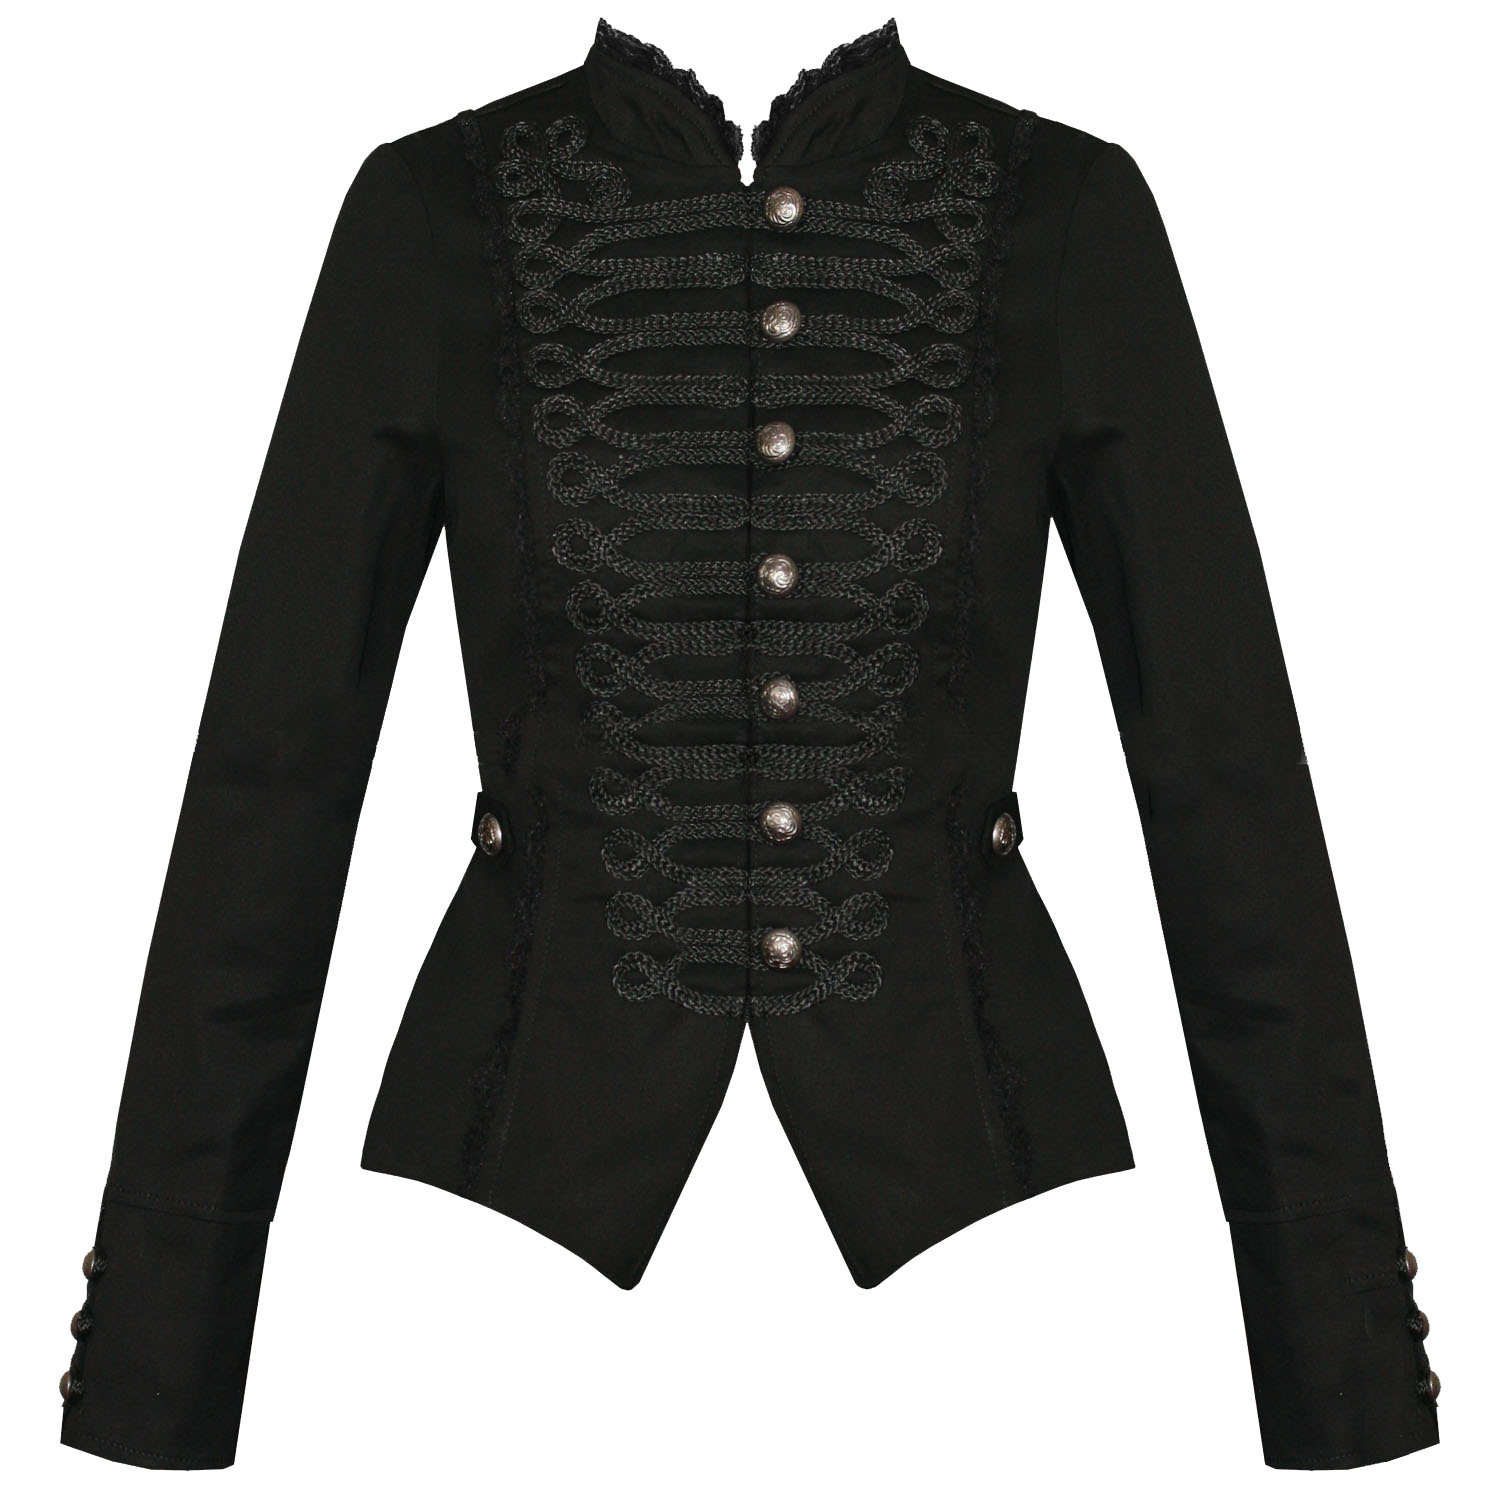 Womens Ladies New Black Gothic Steampunk Military Cotton Tailcoat Coat